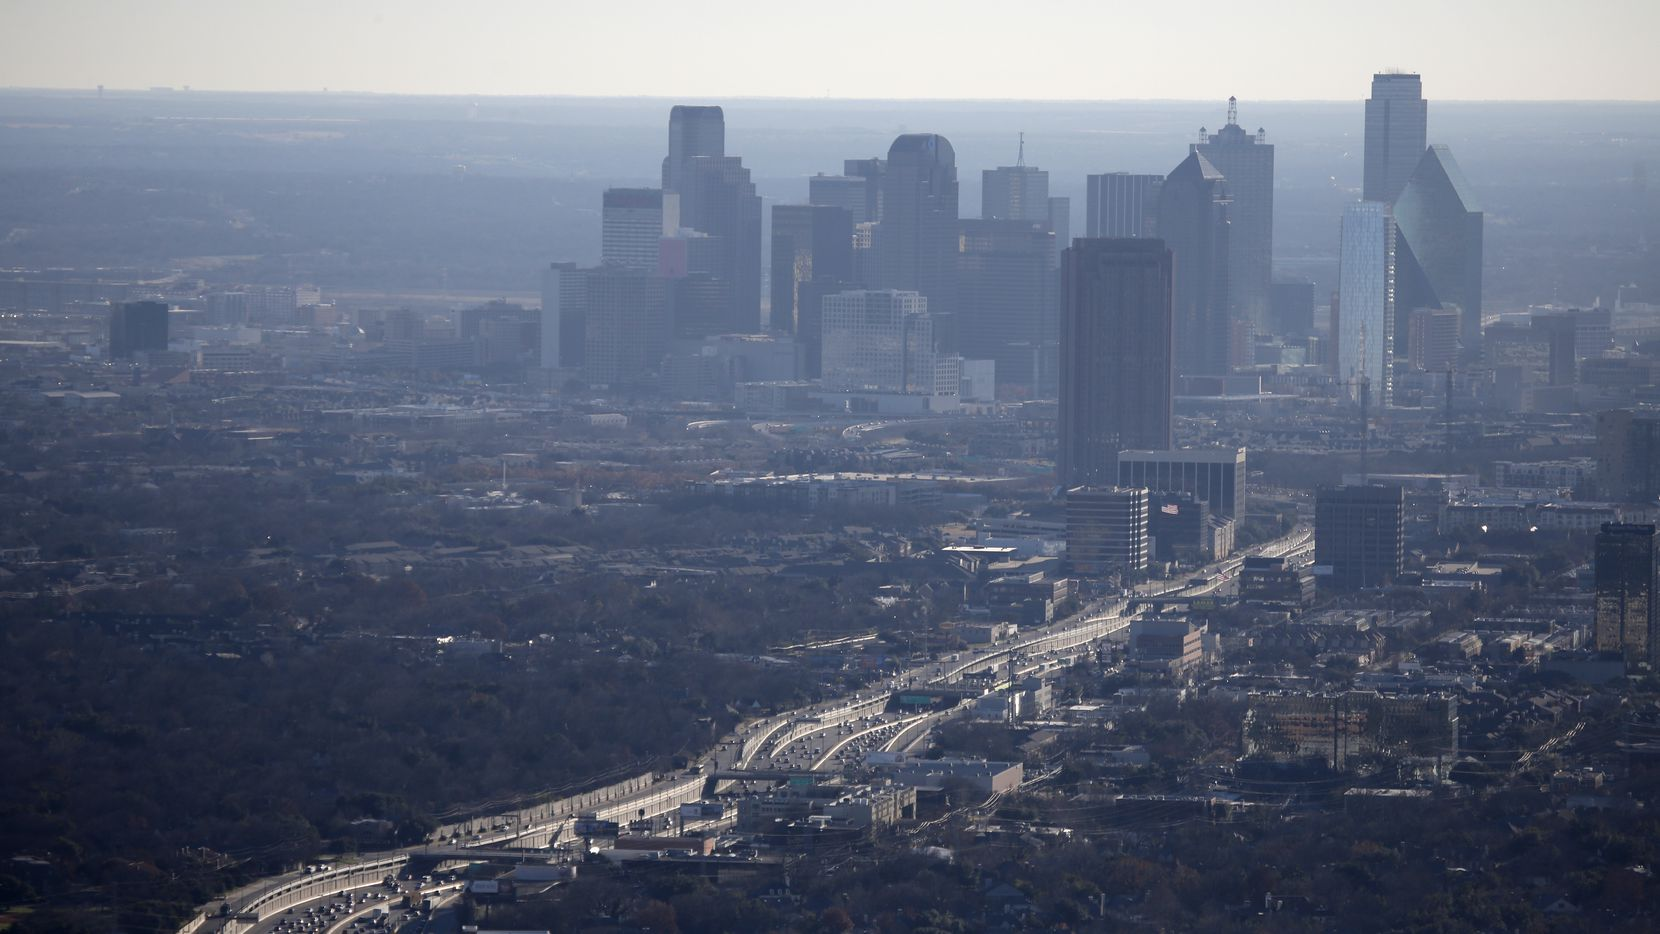 The air hangs with haze as traffic moves on Hwy. 75 Central Expressway from near the Mockingbird Lane (not pictured, bottom) area to downtown Dallas (top) January 3, 2014. CityPlace tower stands in the foreground (center right), north of downtown.